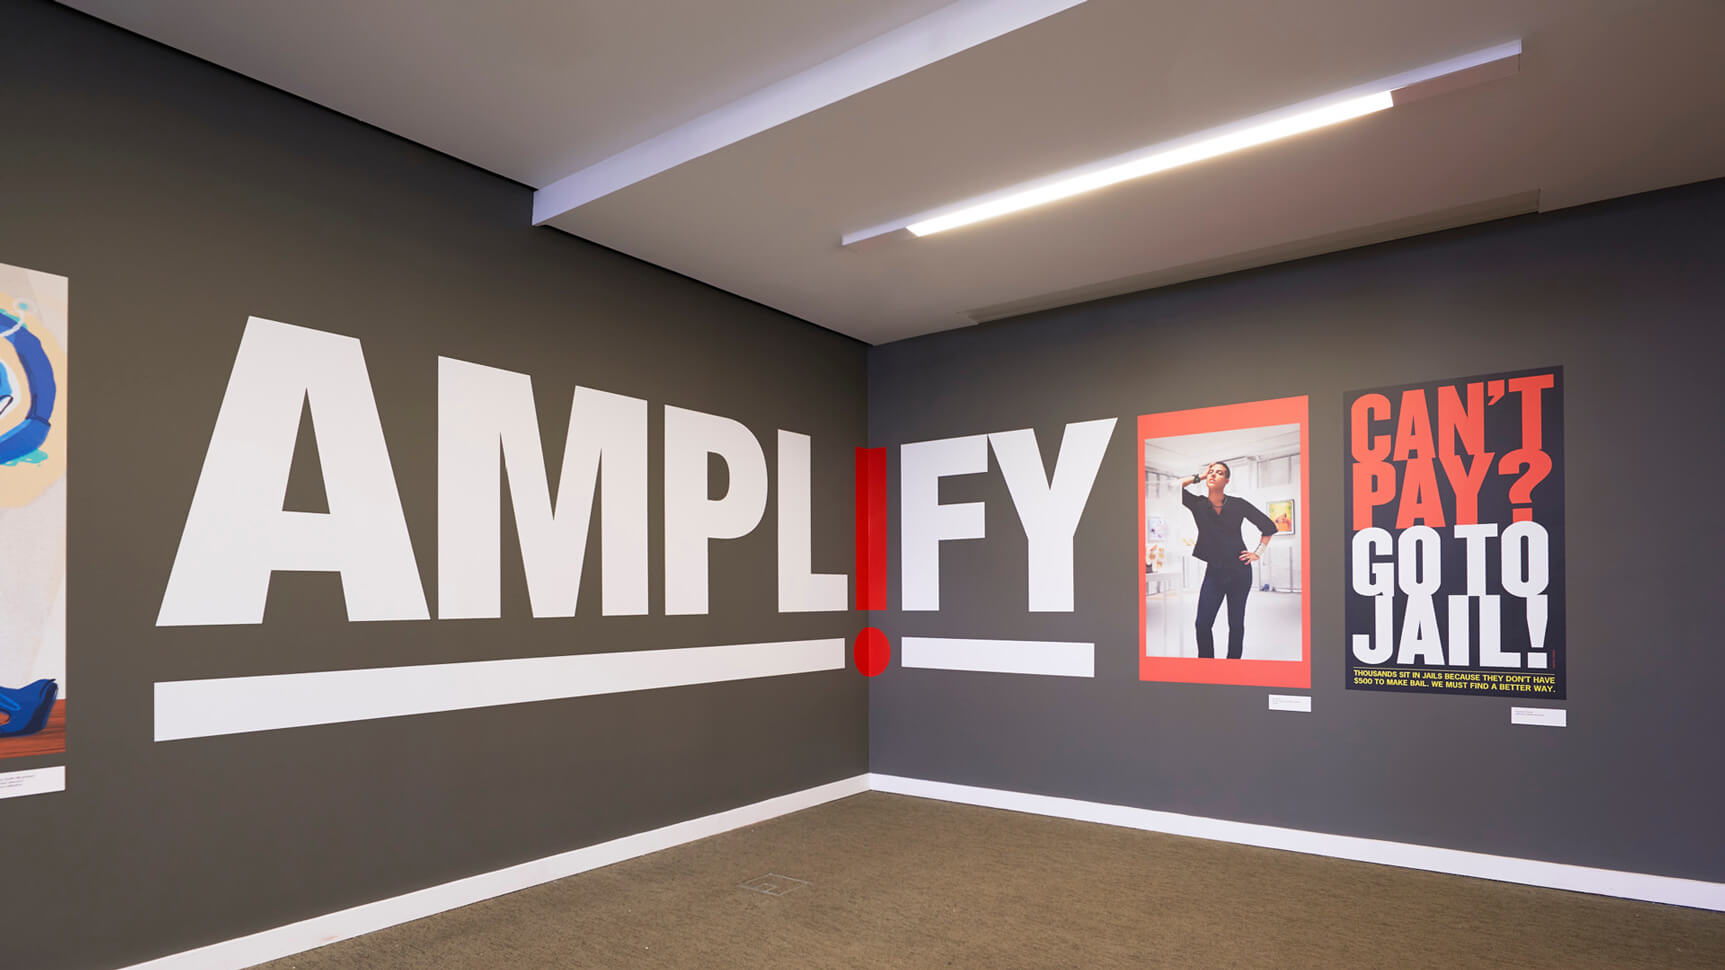 exhibition featuring amplify